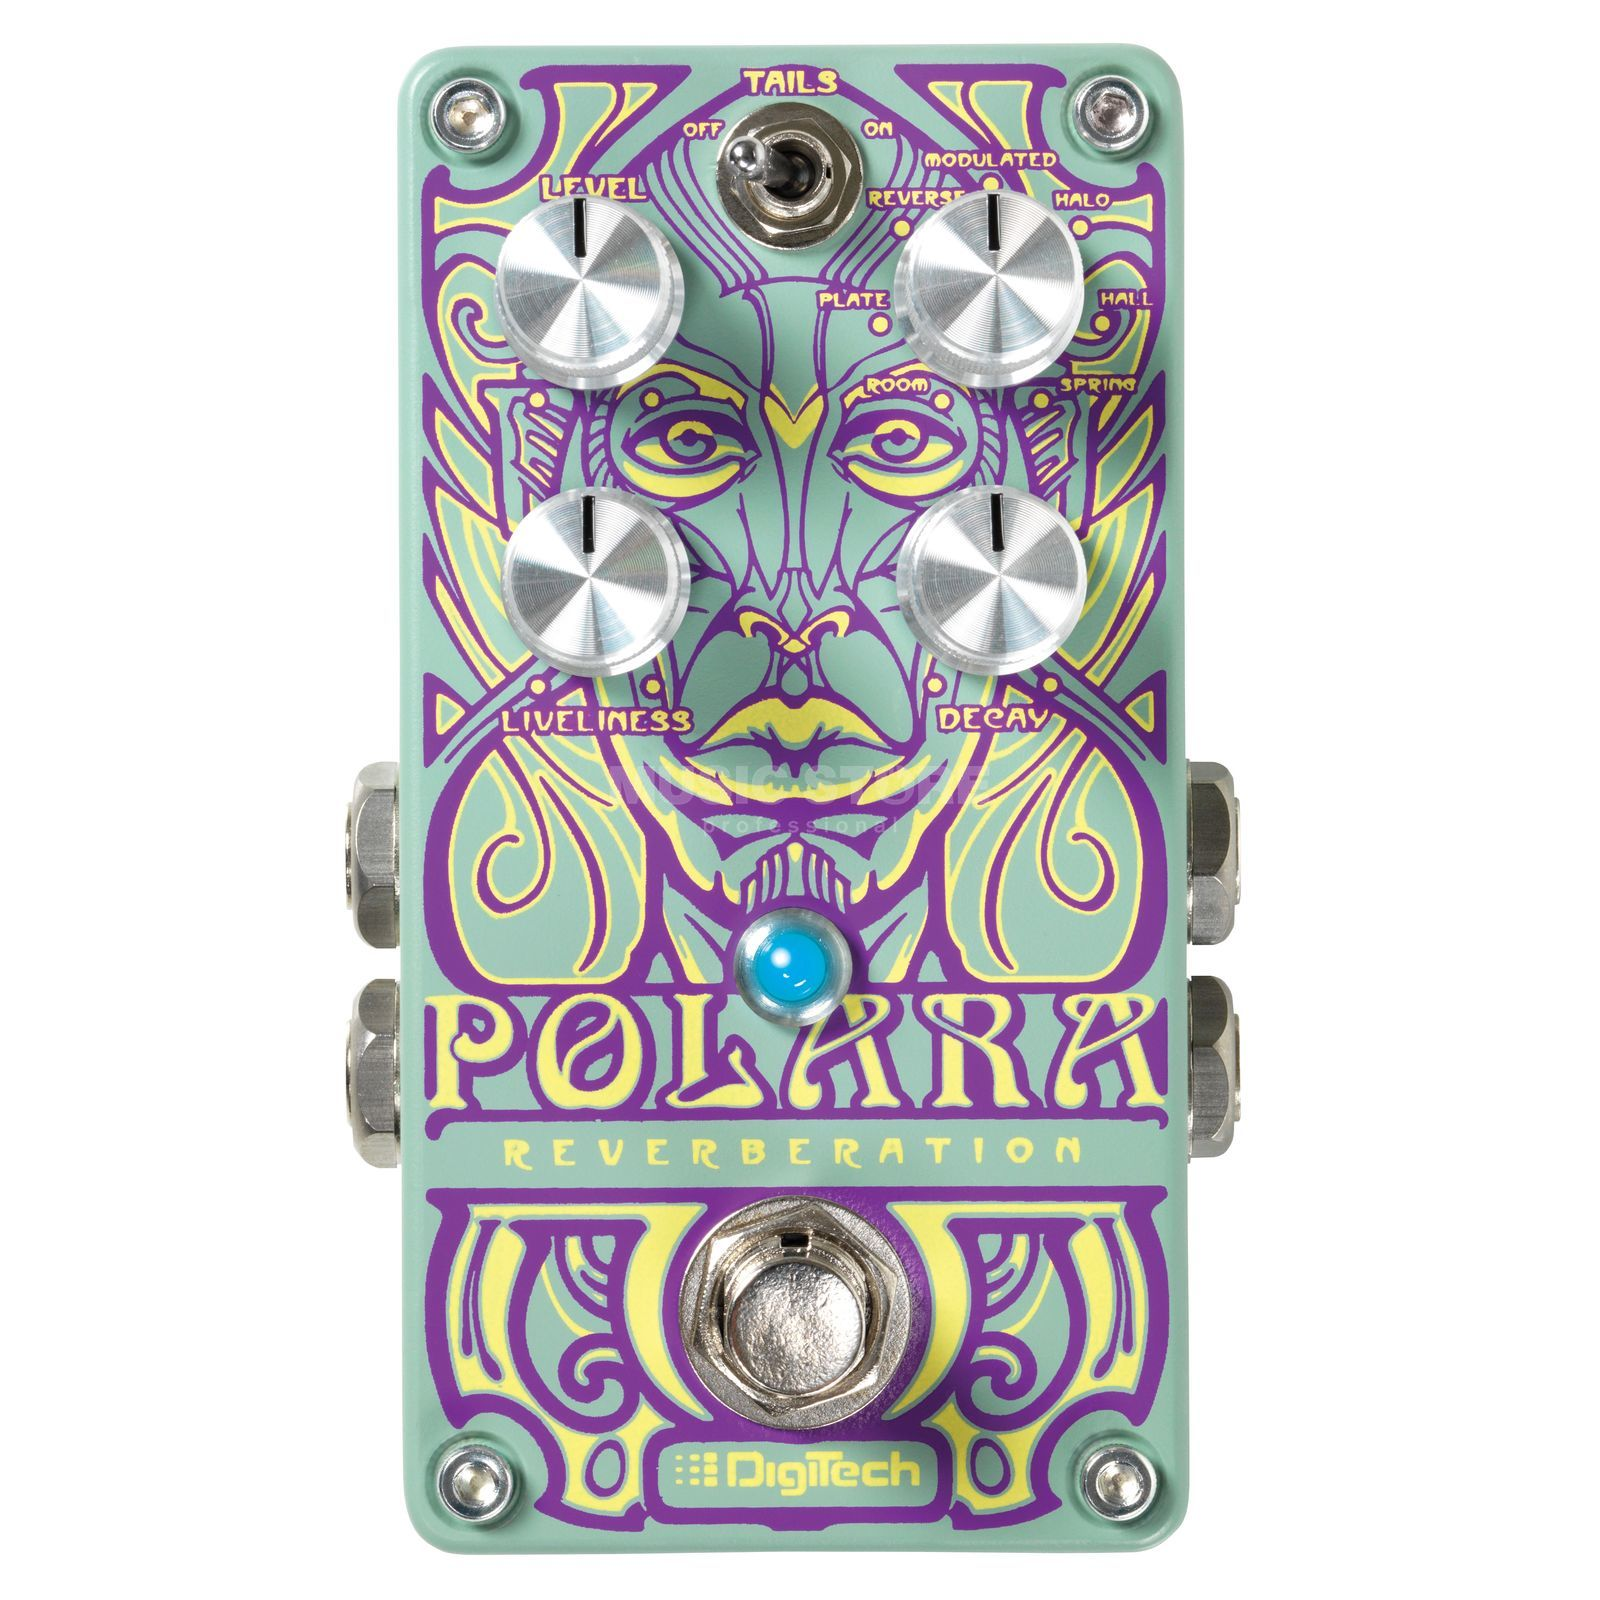 DigiTech Polara Stereo Reverb Pedal Product Image